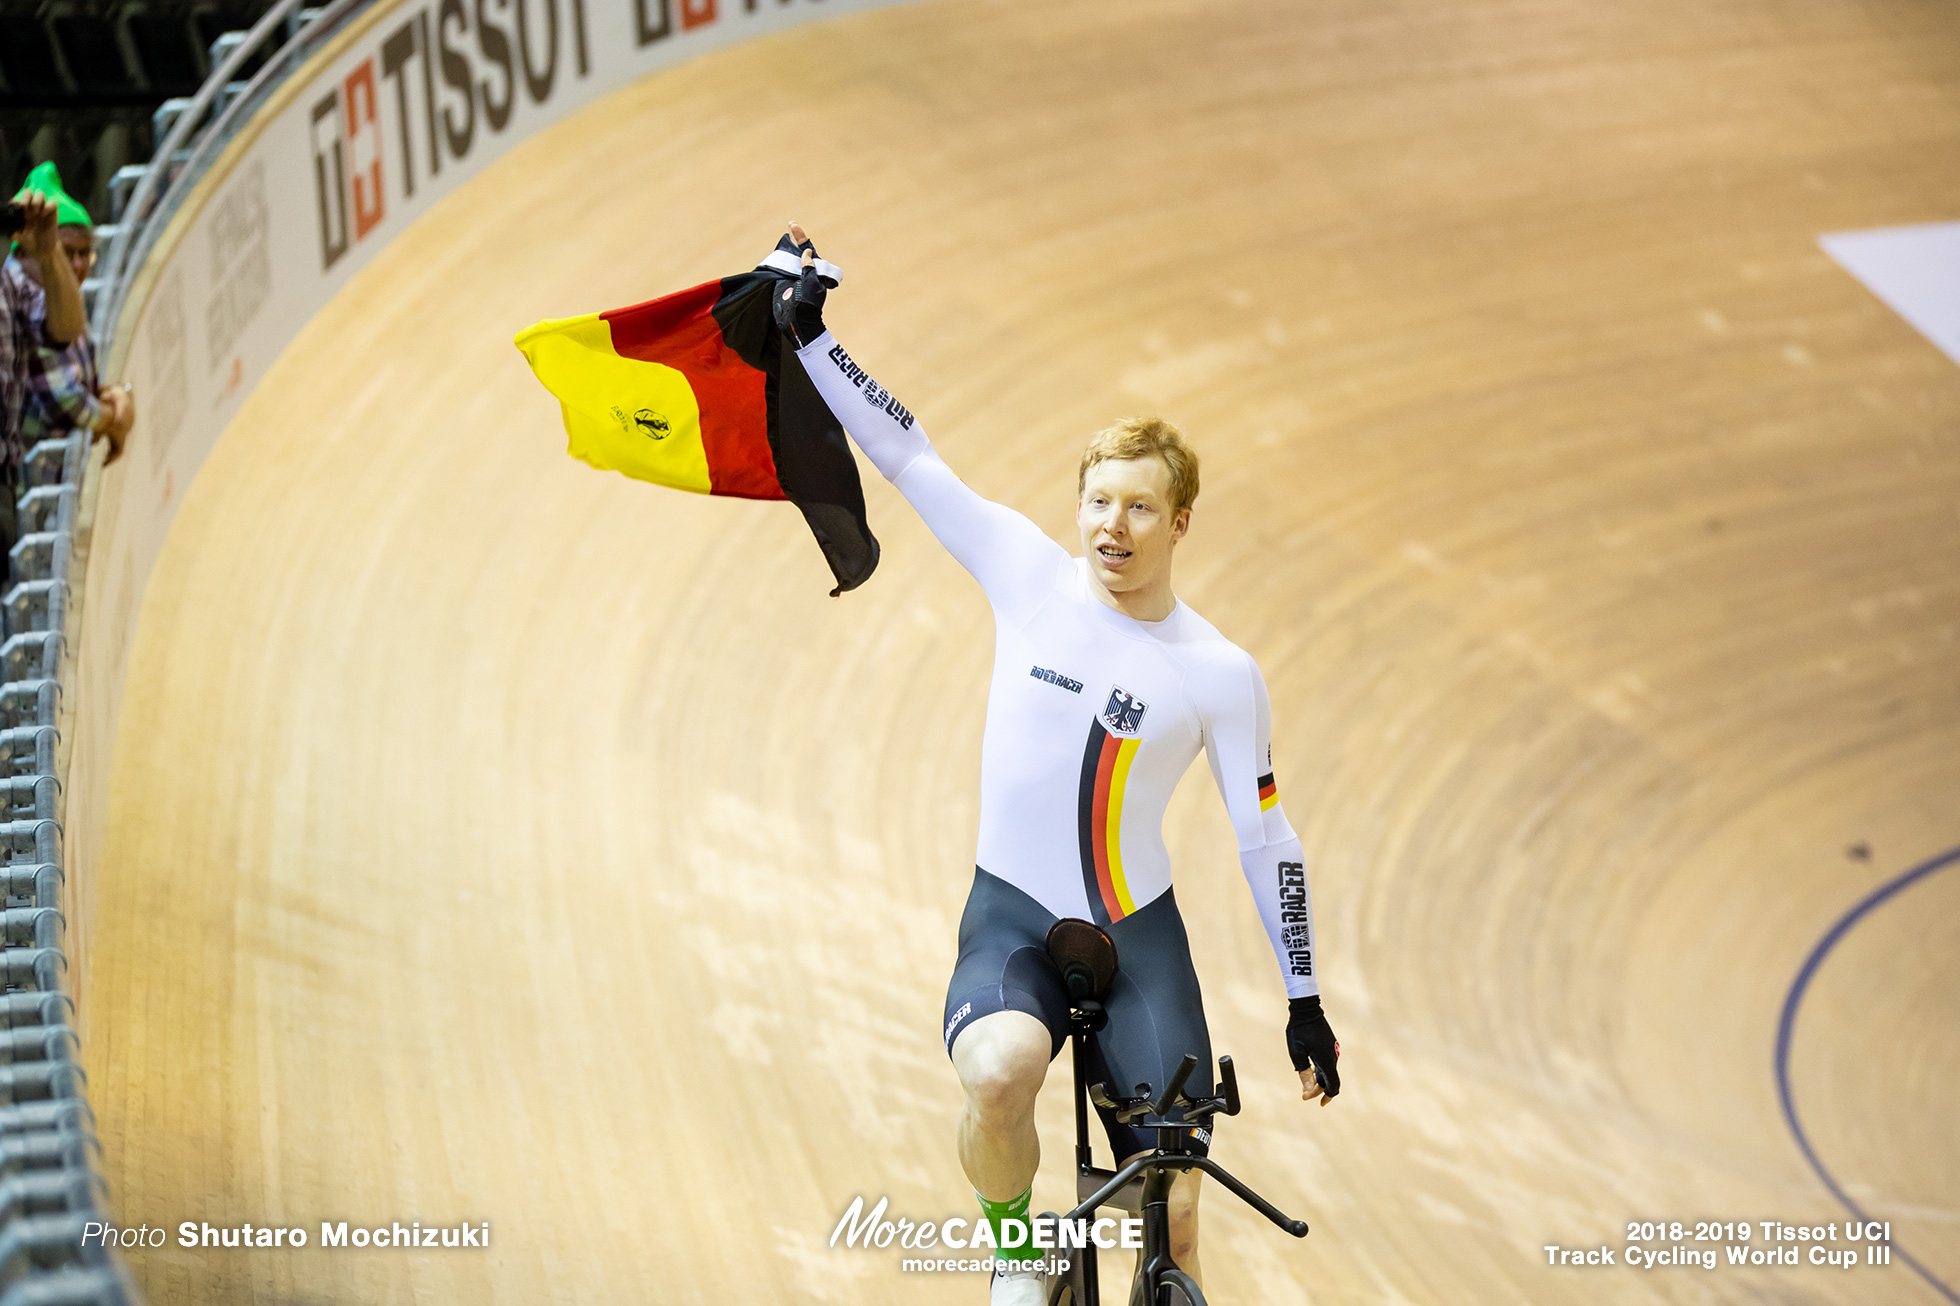 Men's 1kmTT/2018-2019 Track Cycling World Cup III Berlin